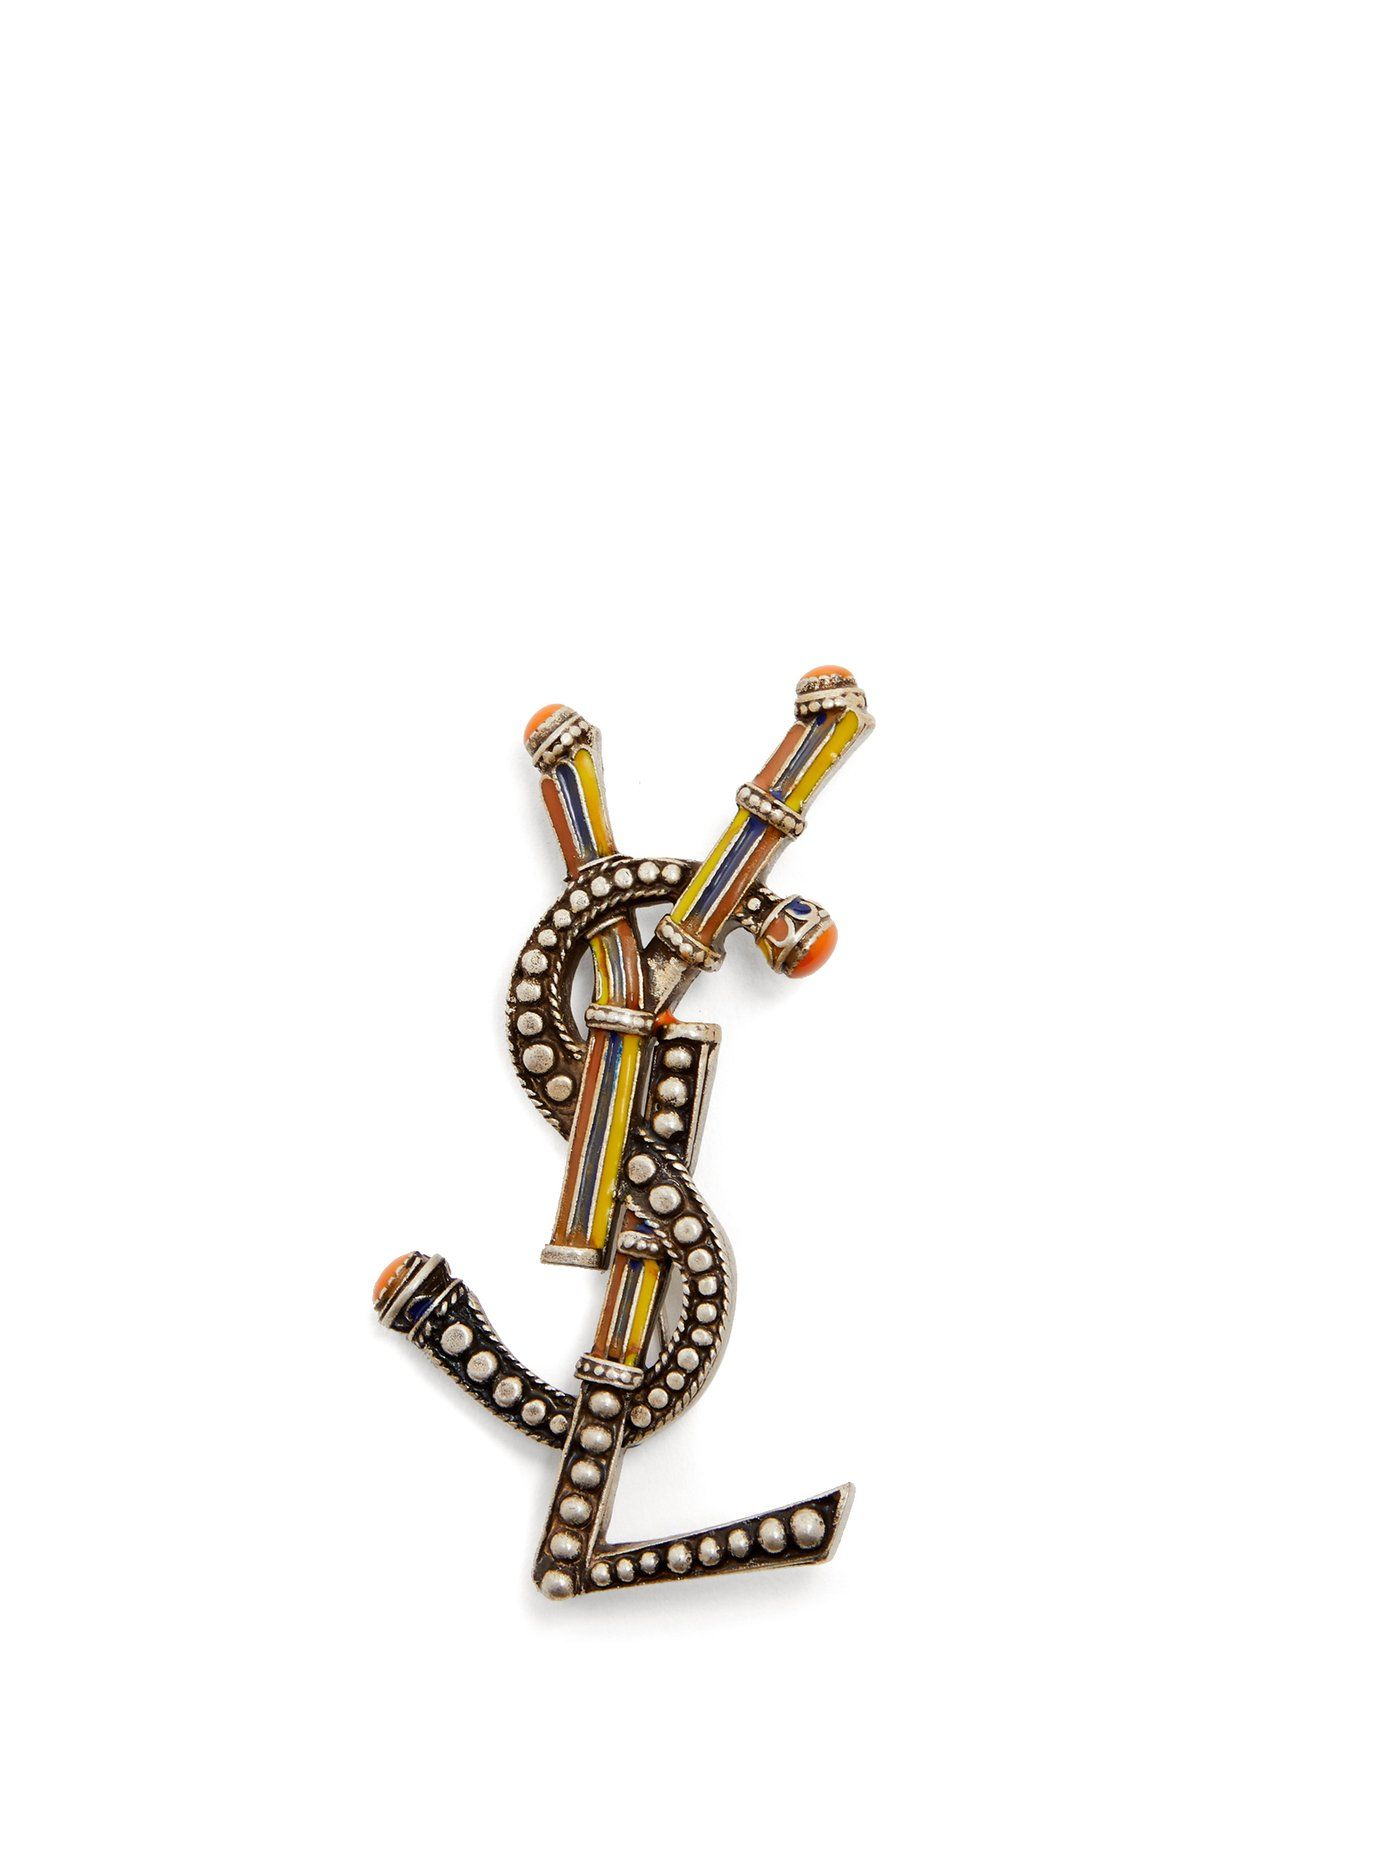 440d2886296 Click here to buy Saint Laurent Opyum Berber YSL brooch at  MATCHESFASHION.COM